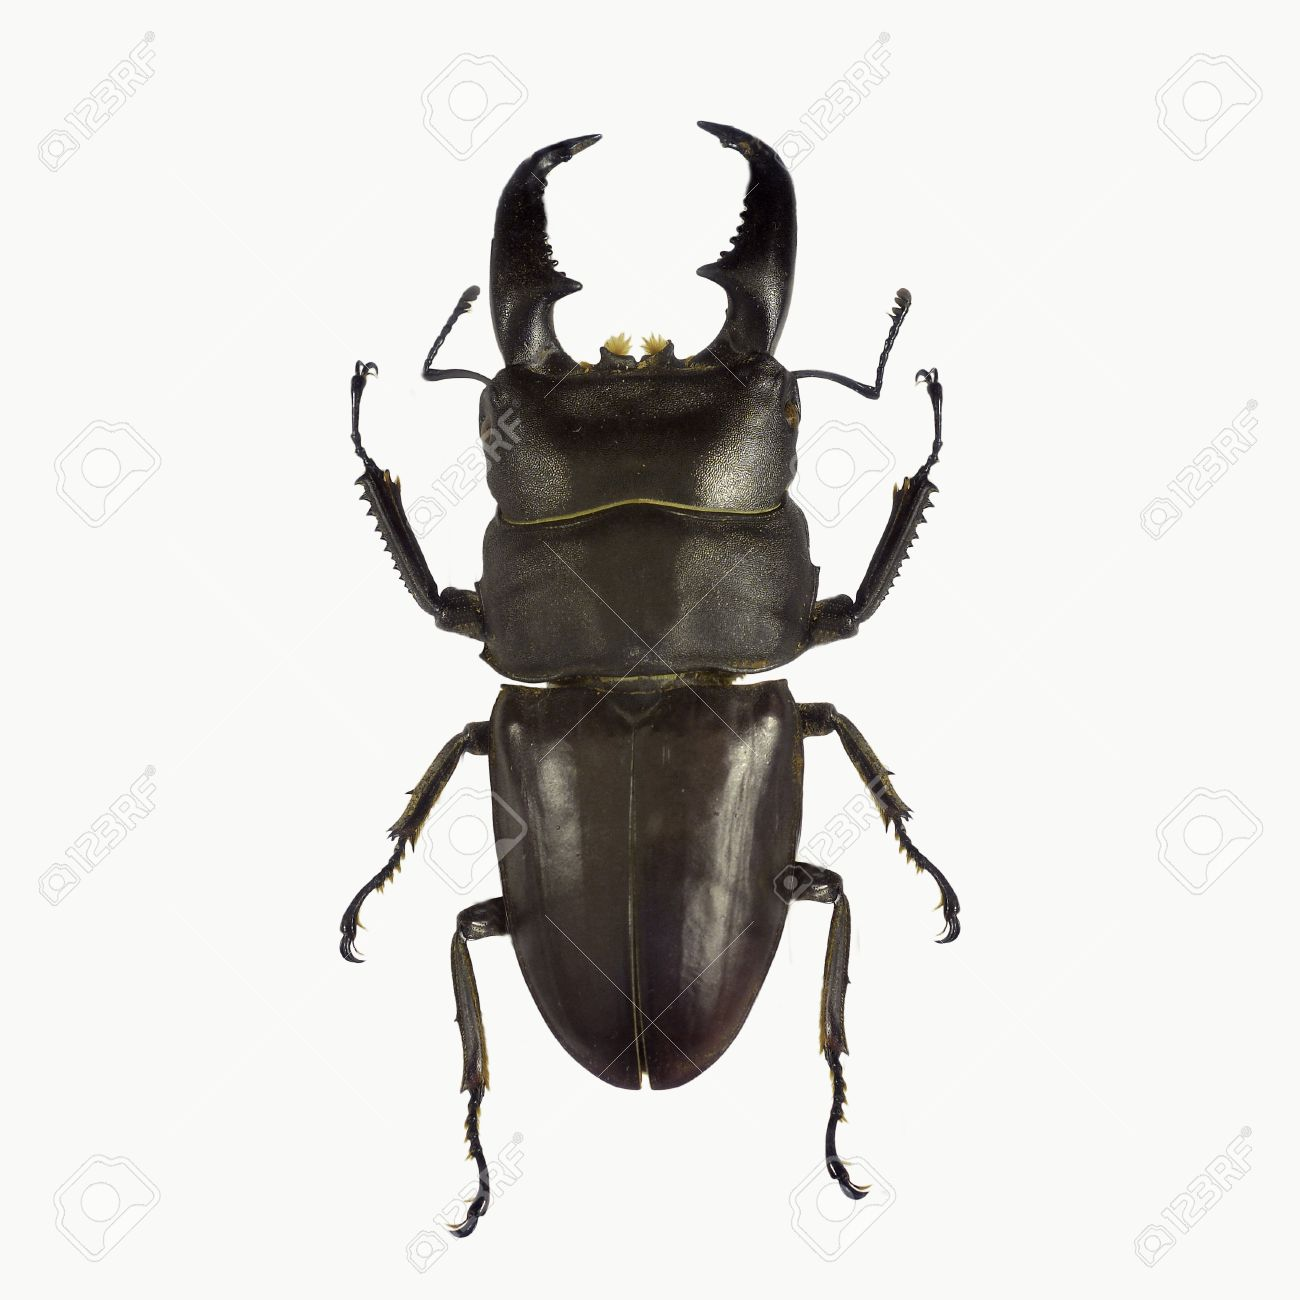 Black stag beetle isolated on white background - 34559087